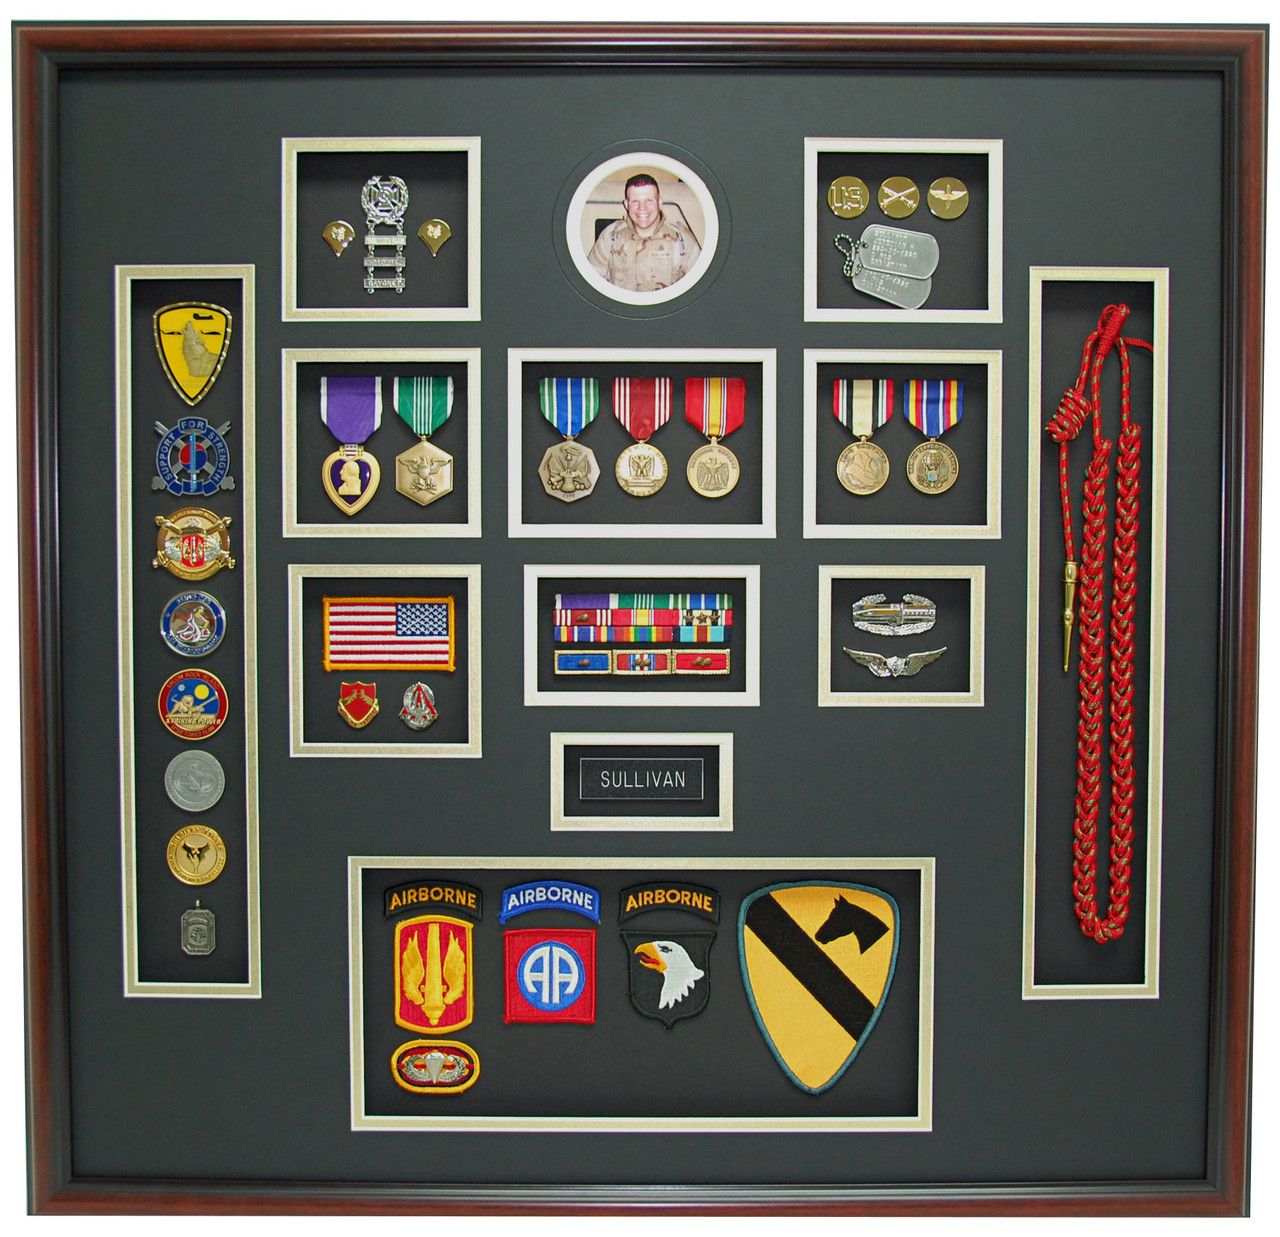 Army Shadow Box Display Wiring Diagrams Simulated Inductor Circuit Diagram Tradeoficcom Us Airborne Military Displays Rh Pinterest Com Medals